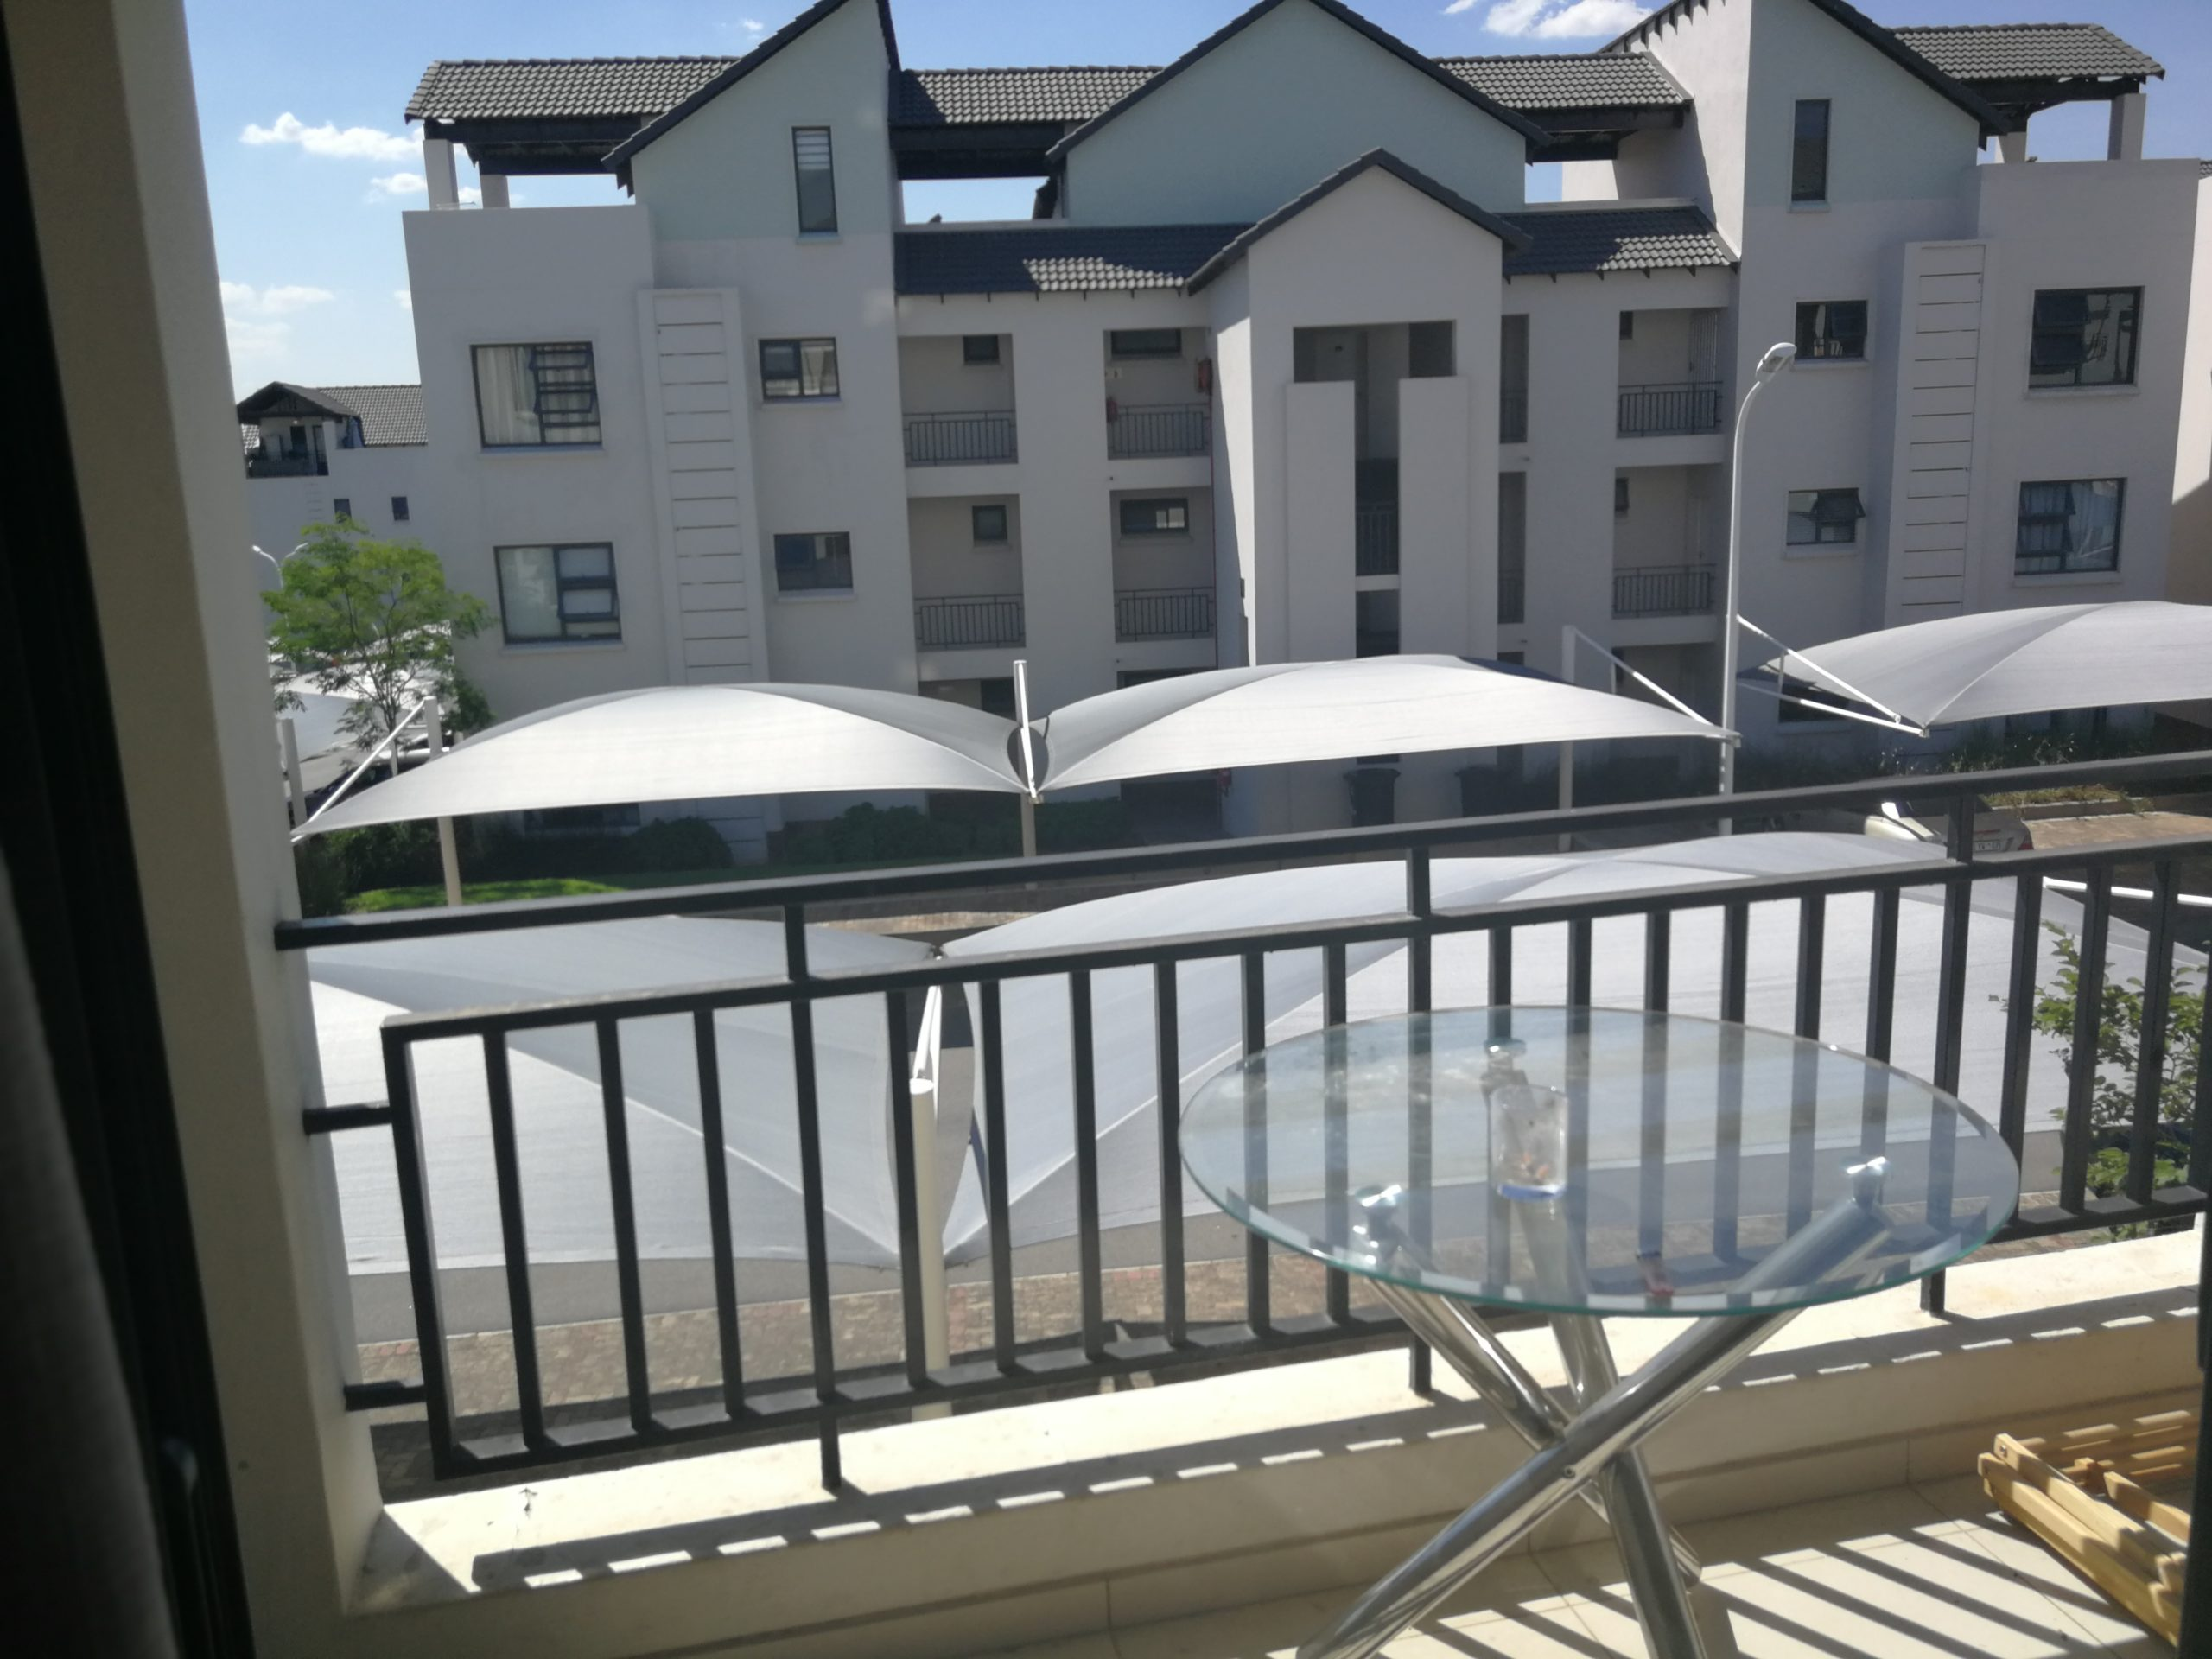 291 The View, 89 Broadacres Drive